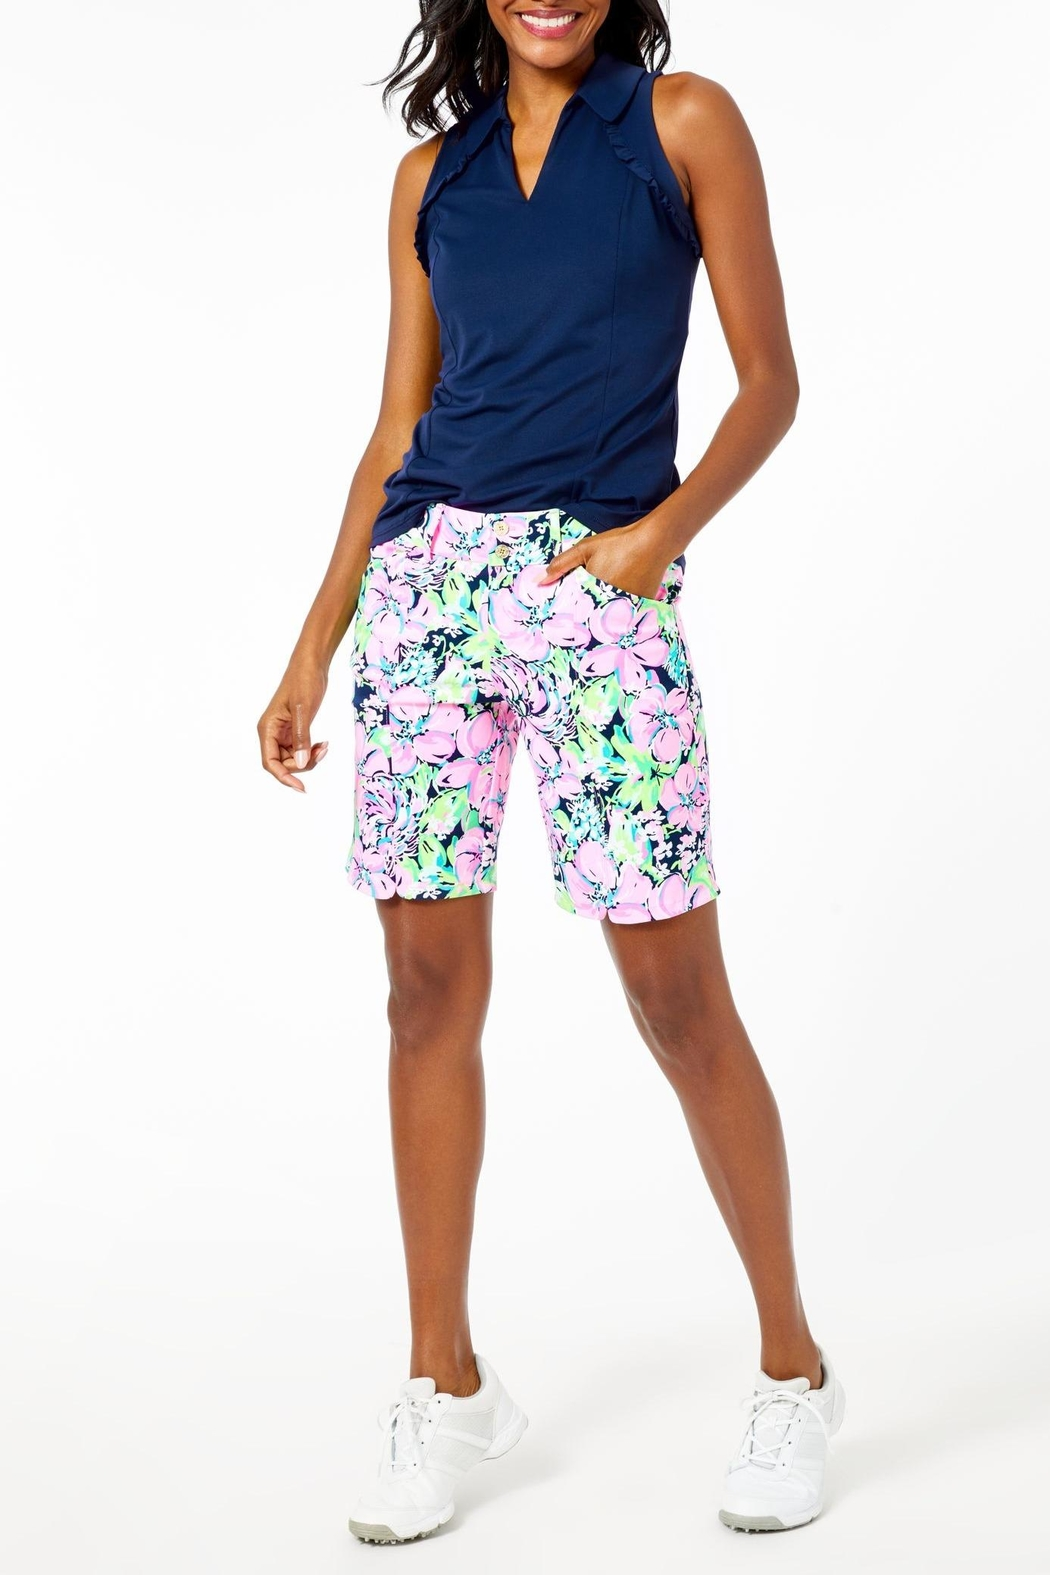 Lilly Pulitzer Luxletic Bettina Short - Back Cropped Image